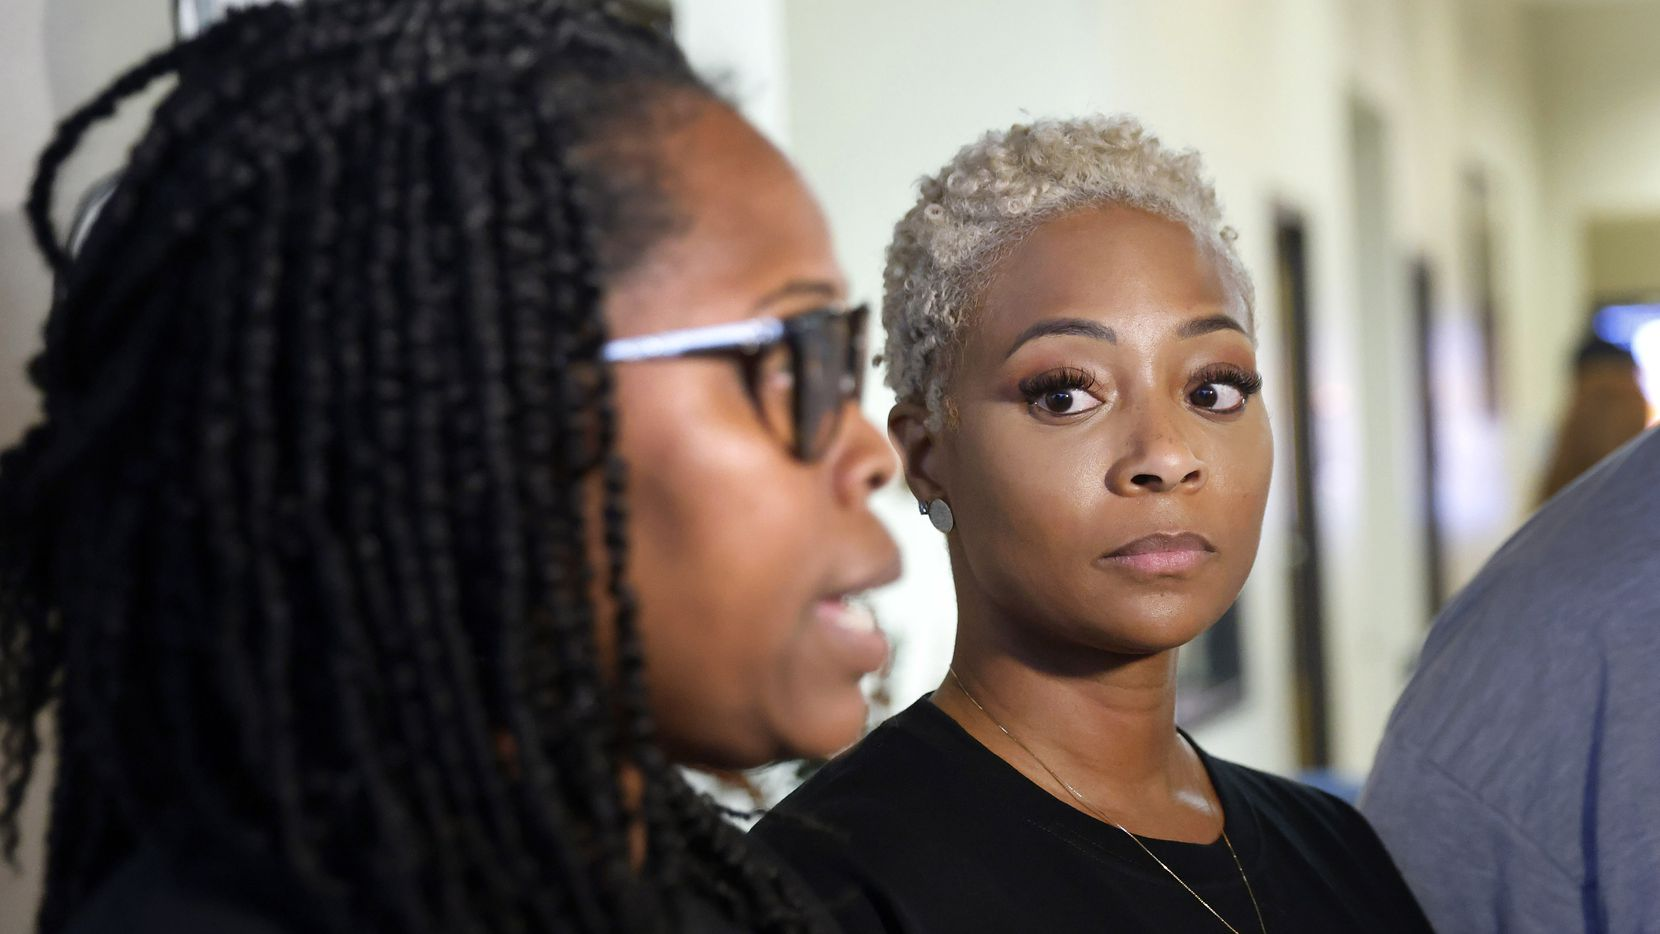 Mothers Tamara Lawrence (left) and Mioshi Johnson spoke to the media Thursday night after addressing the Aledo ISD school board about a racist Snapchat group that targeted their ninth-grade sons.